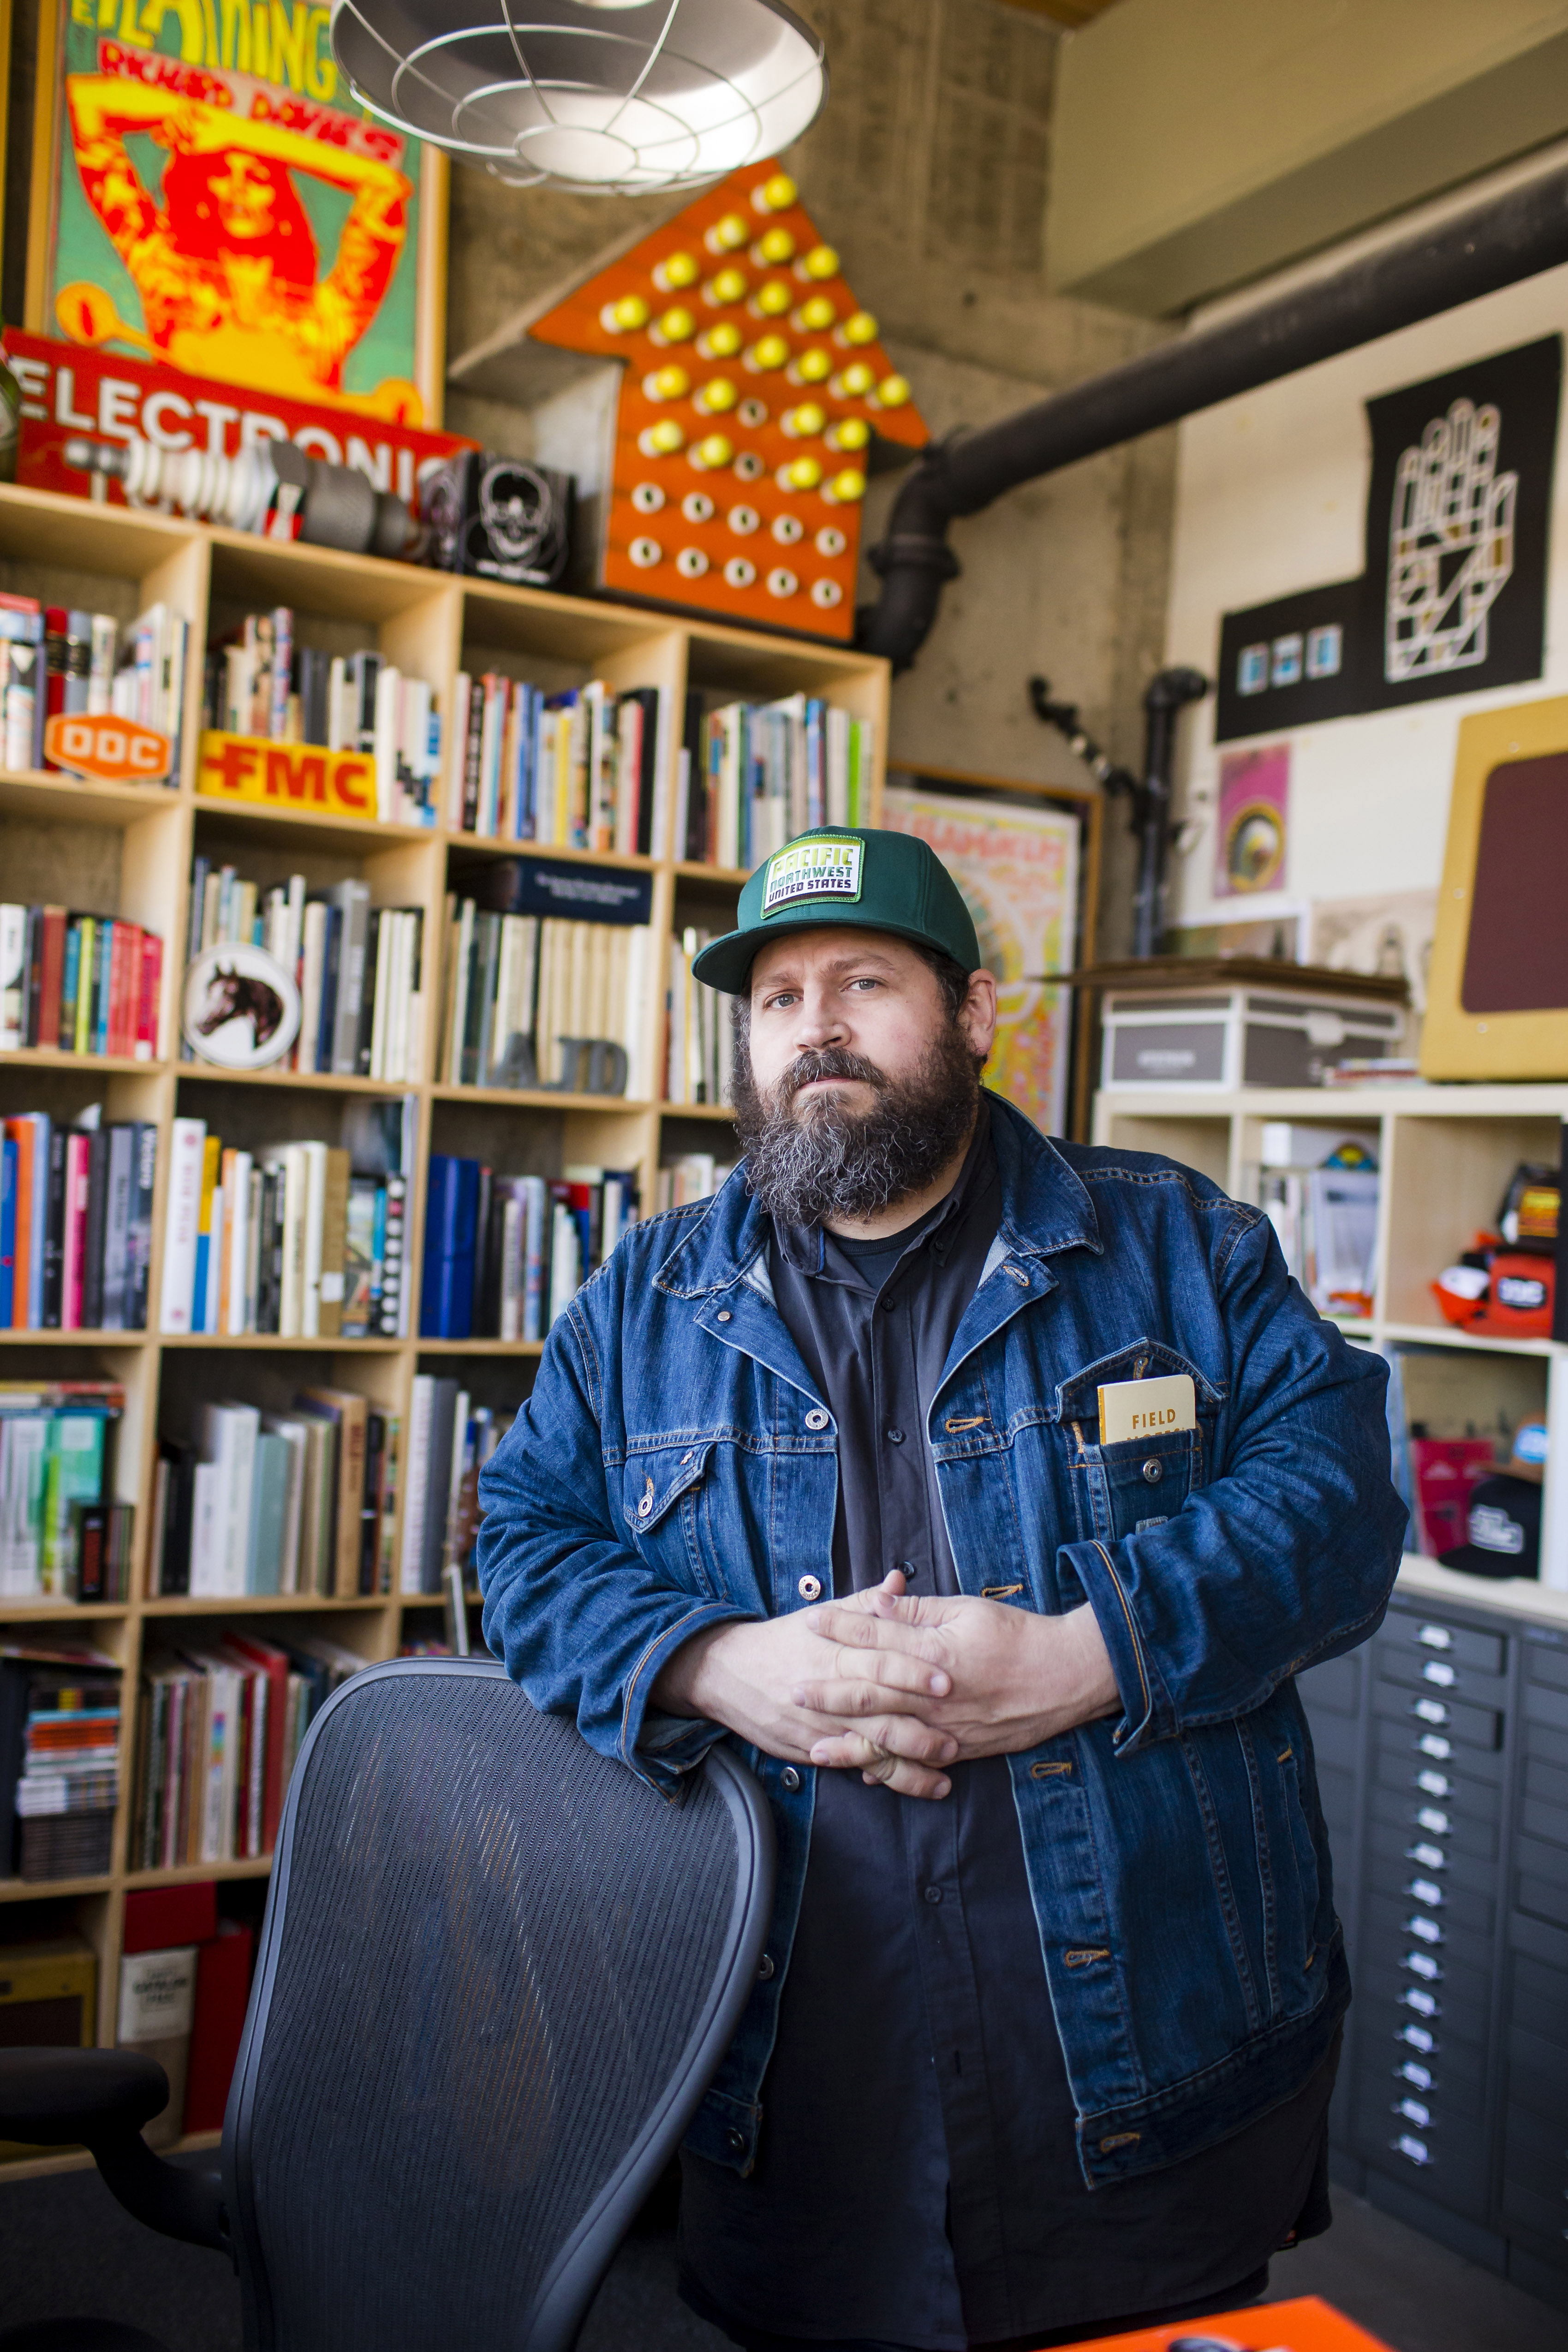 graphic designer aaron draplin to share the whole story behind new book march 7 at isu iowa. Black Bedroom Furniture Sets. Home Design Ideas